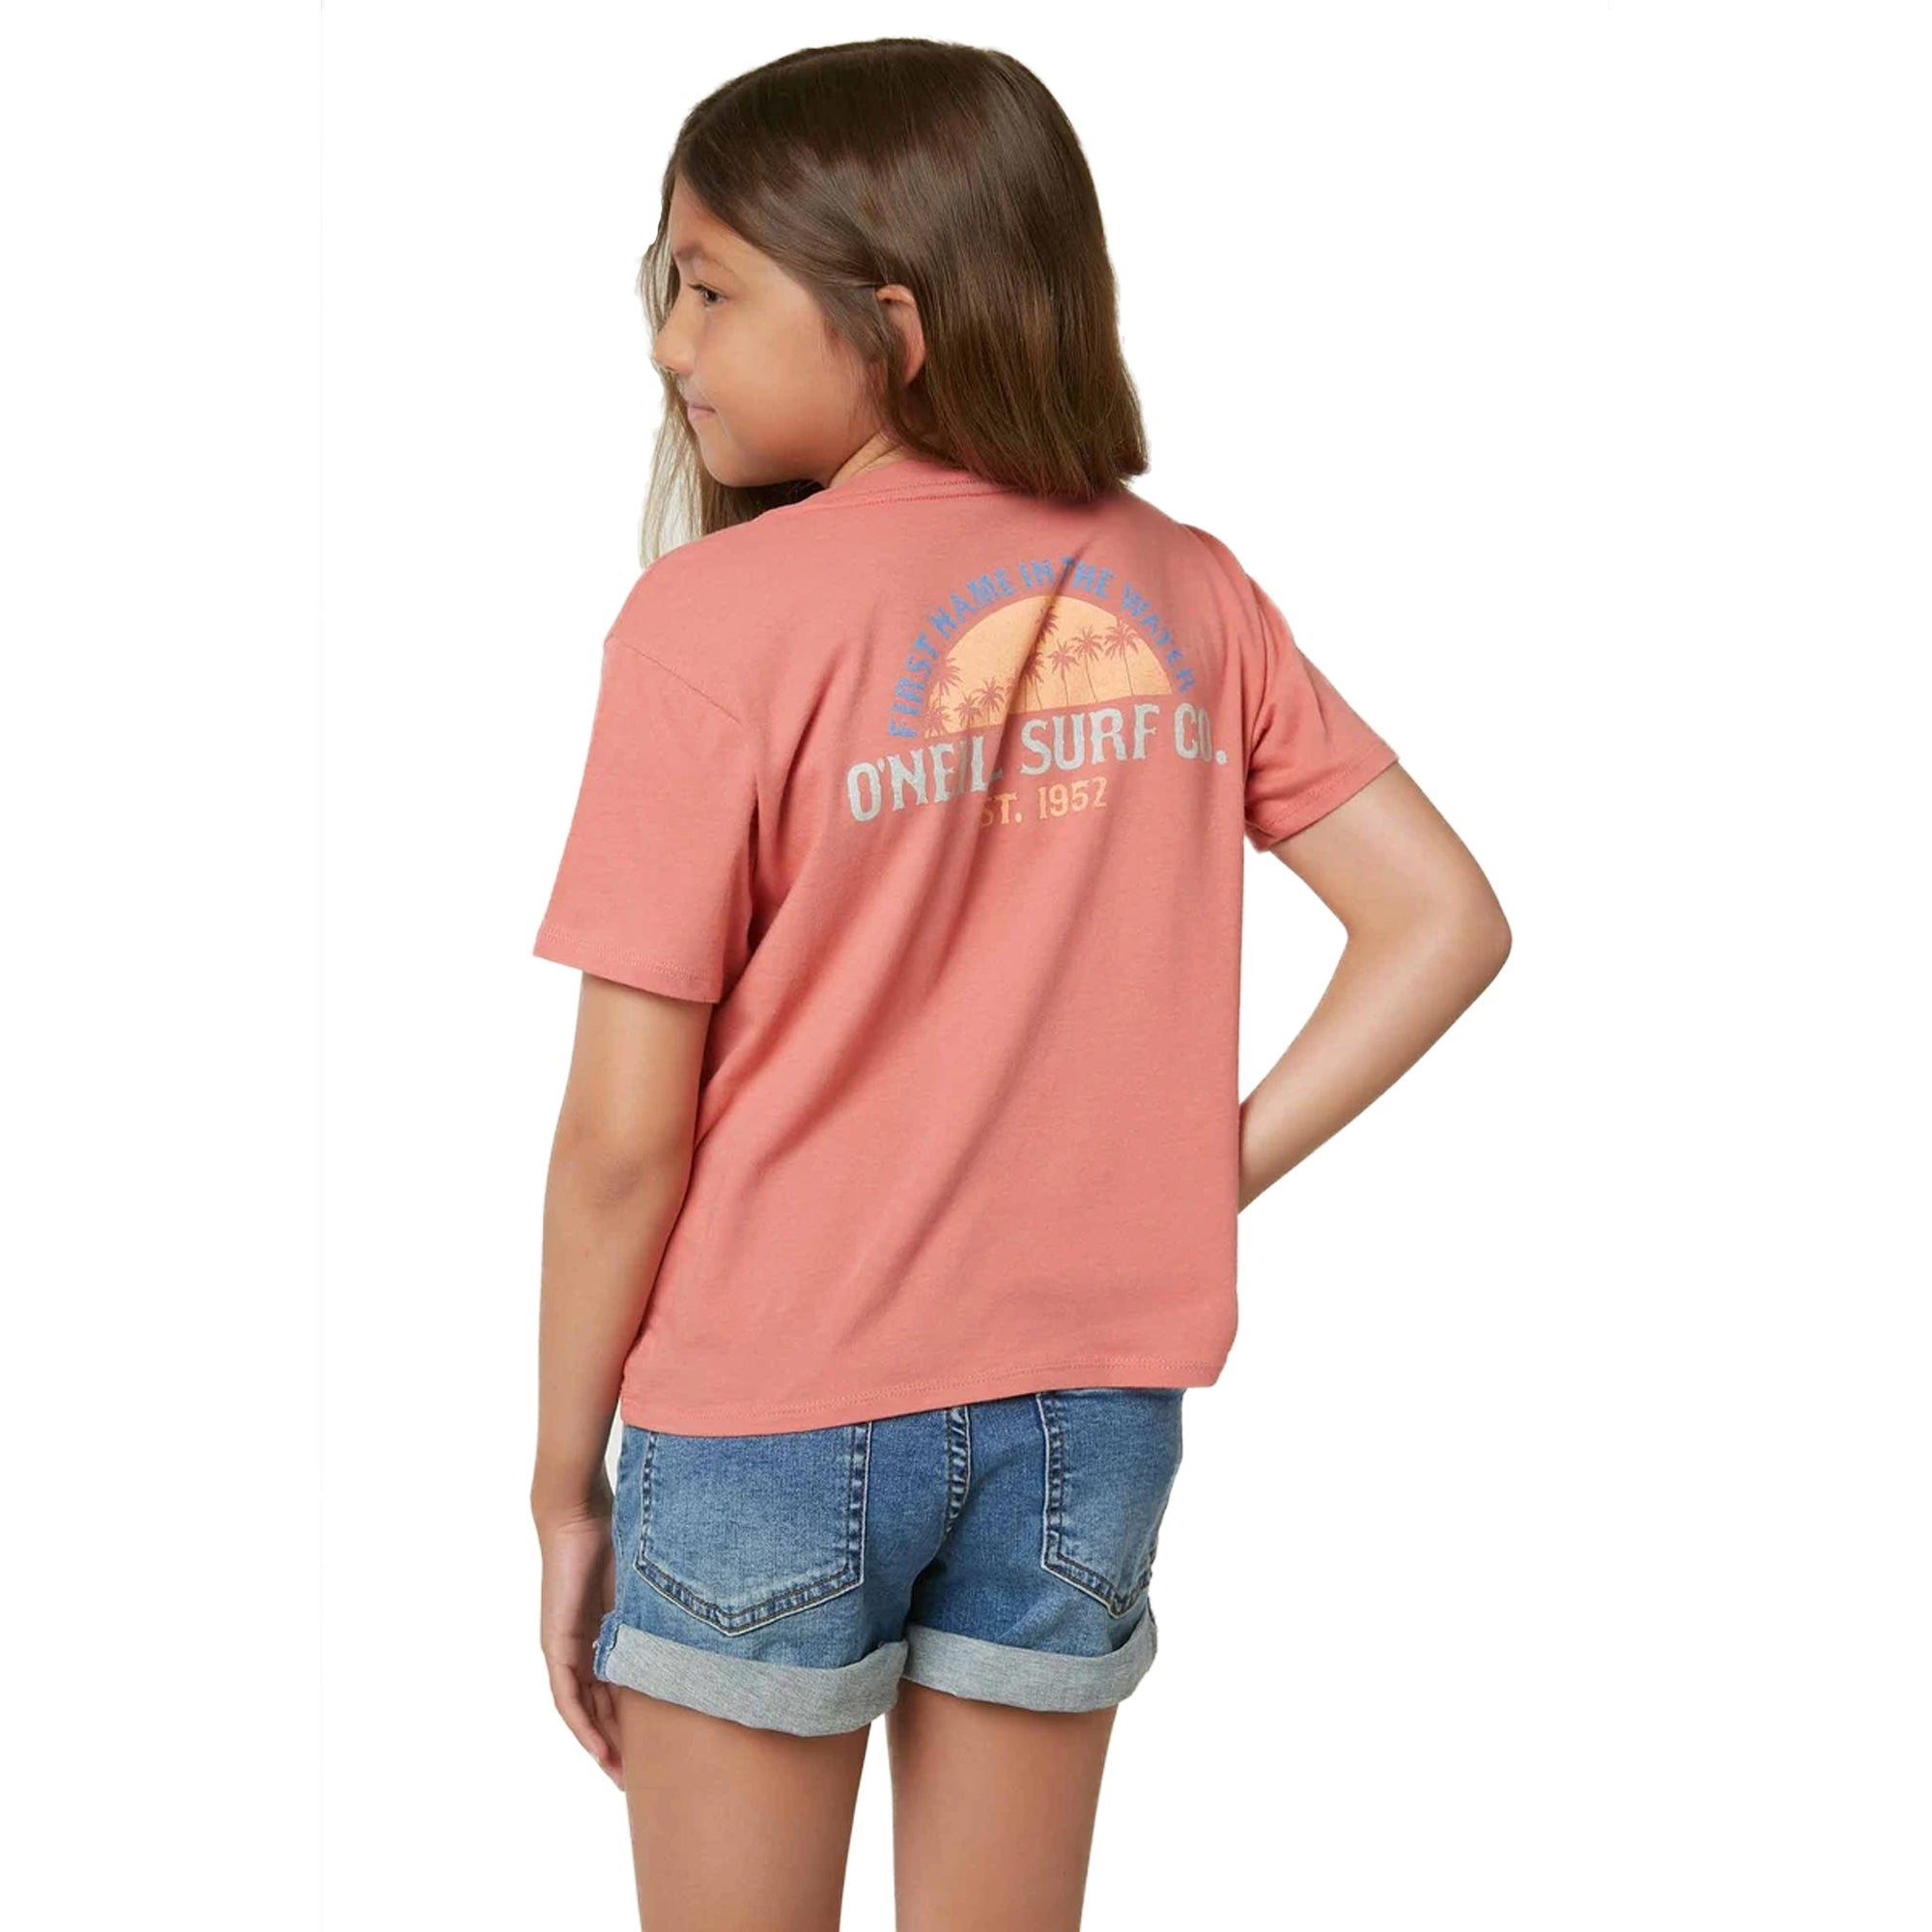 O'Neill Throwback Youth Girl's S/S T-Shirt